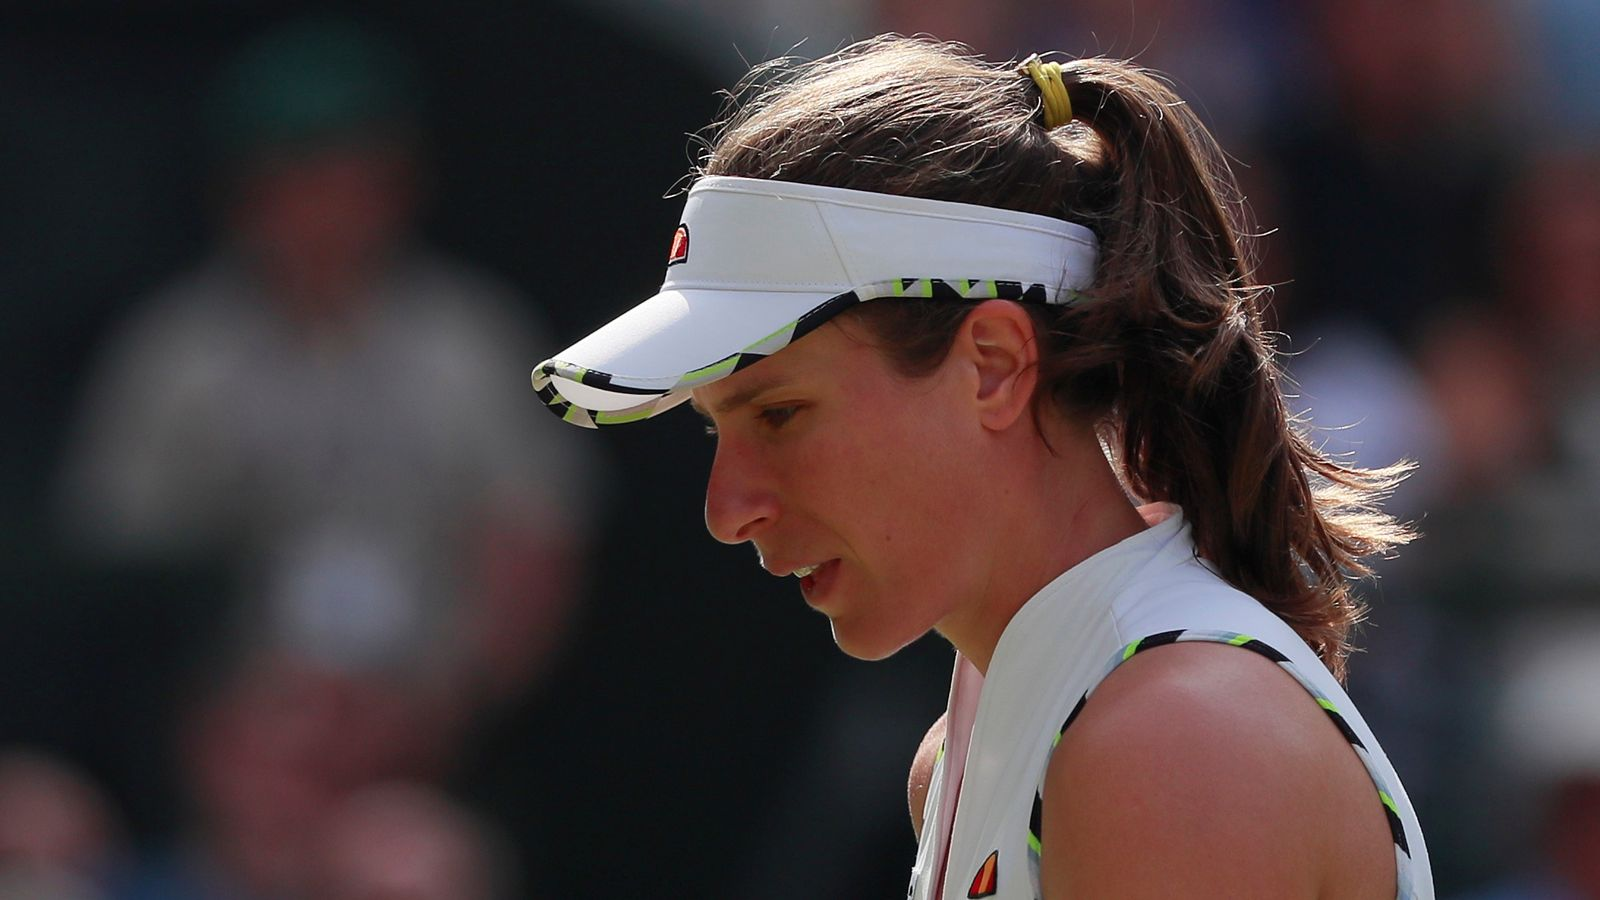 Johanna Konta: British number one out of Wimbledon after member of her team tests positive for COVID